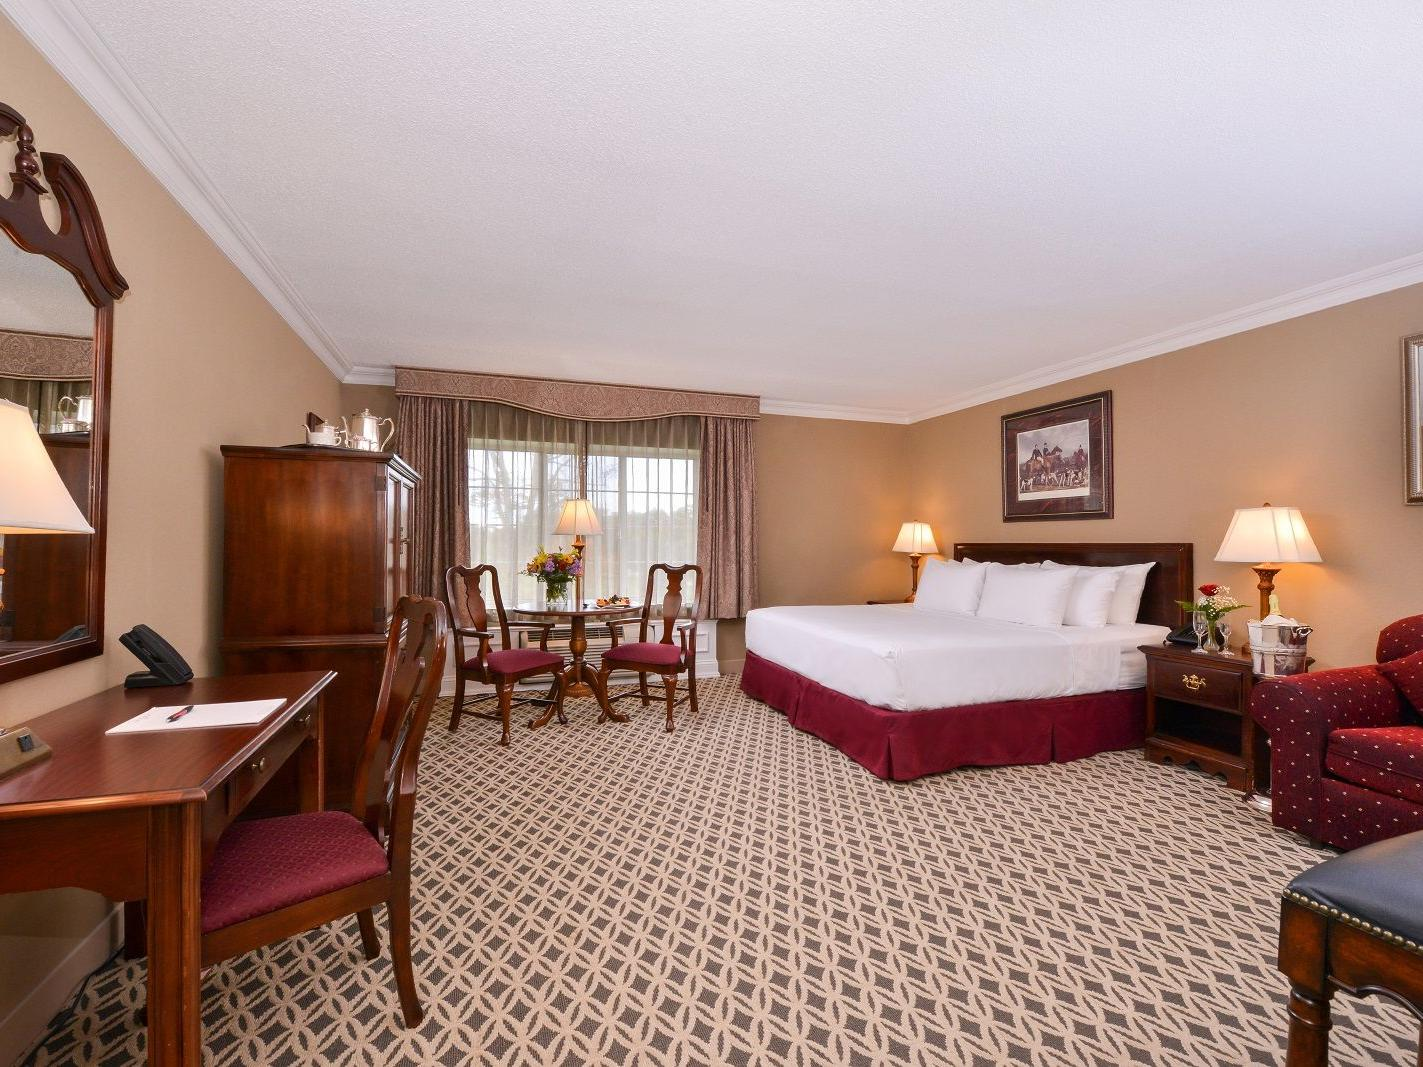 Deluxe hotel room with king bed and work desk